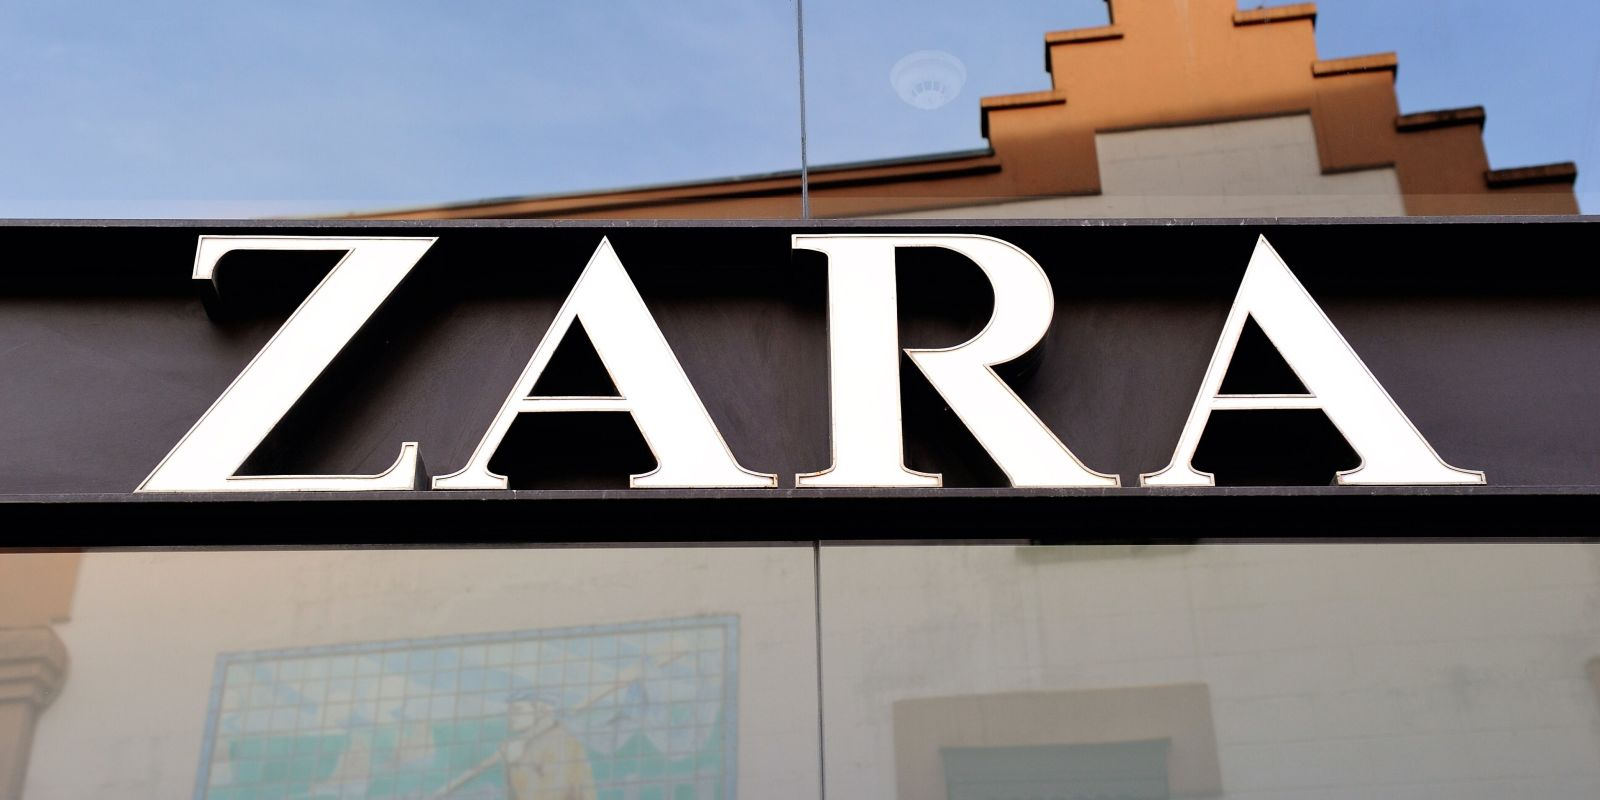 Zara have been hit with a huge lawsuit for 'deceptive pricing' in the States https://t.co/voXZKyWbk9 https://t.co/JkGQ9KaO0h